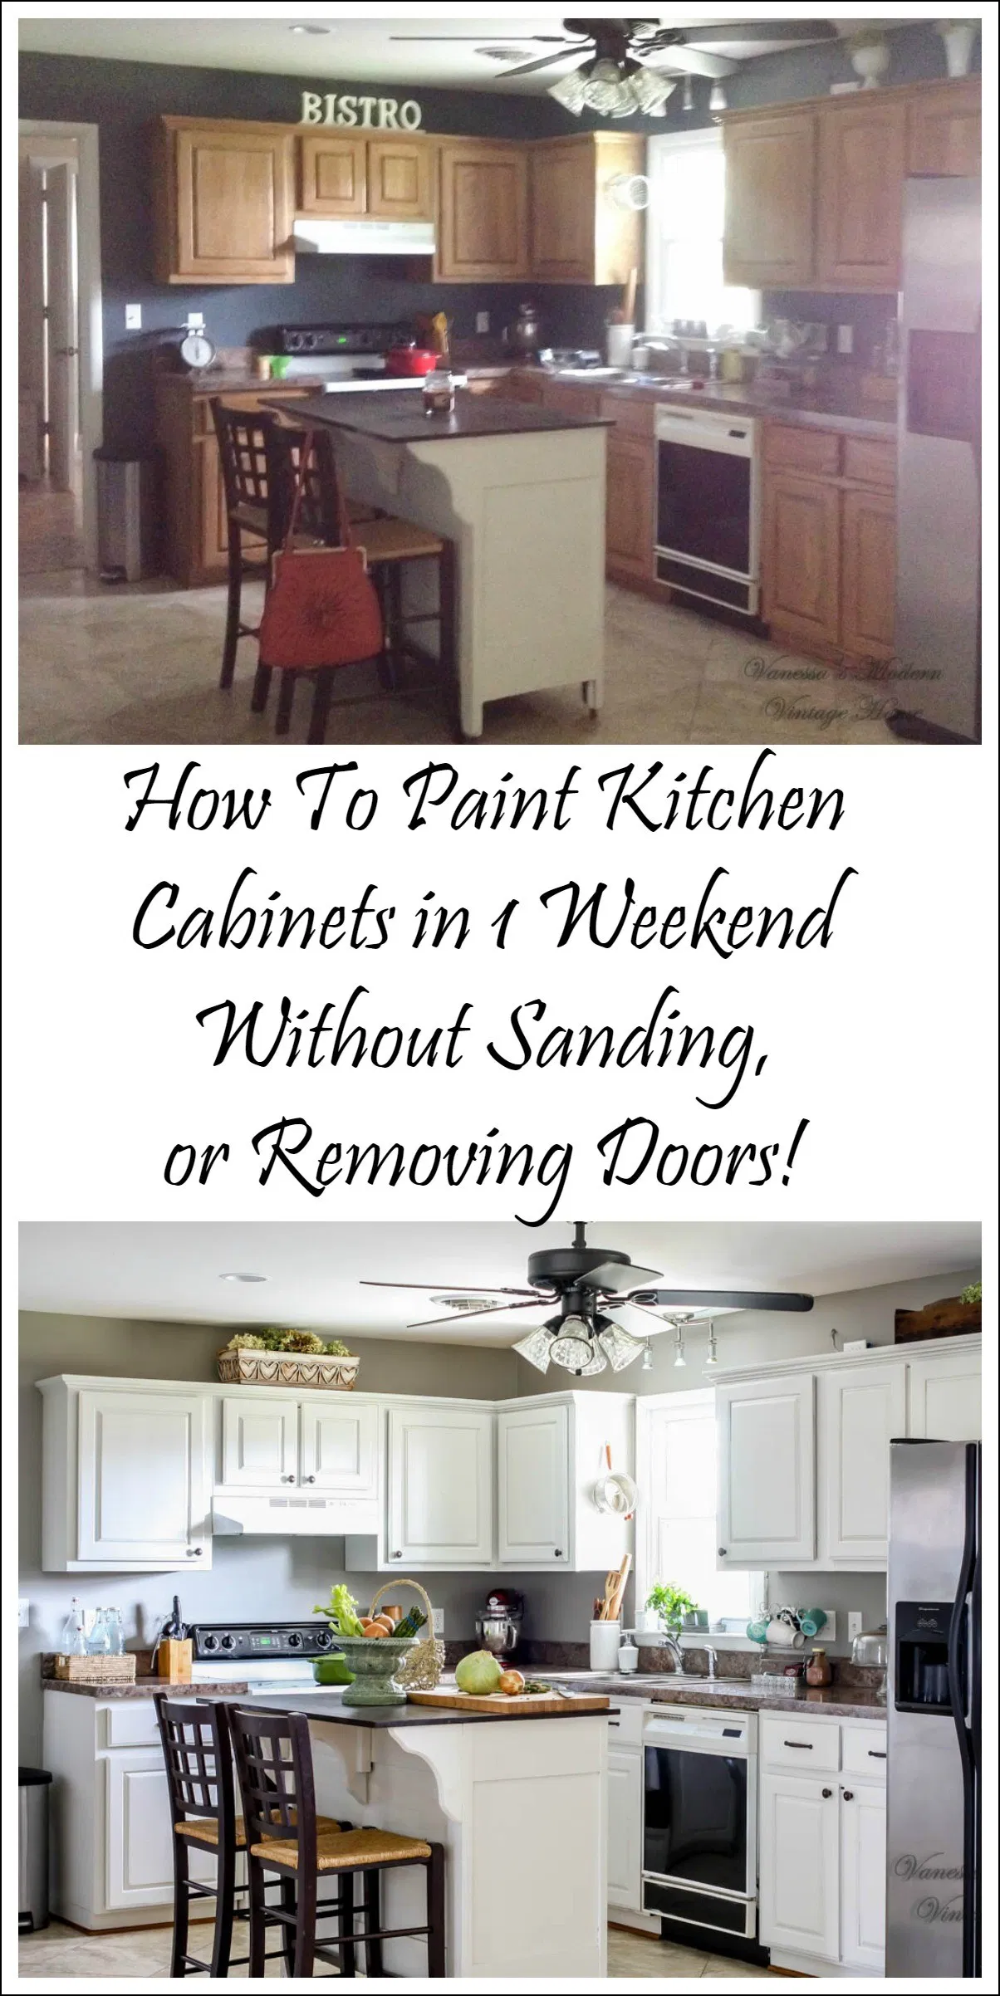 How I Painted My Kitchen Cabinets Without Removing The Doors In 2020 Painting Kitchen Cabinets White Painting Kitchen Cabinets New Kitchen Cabinets